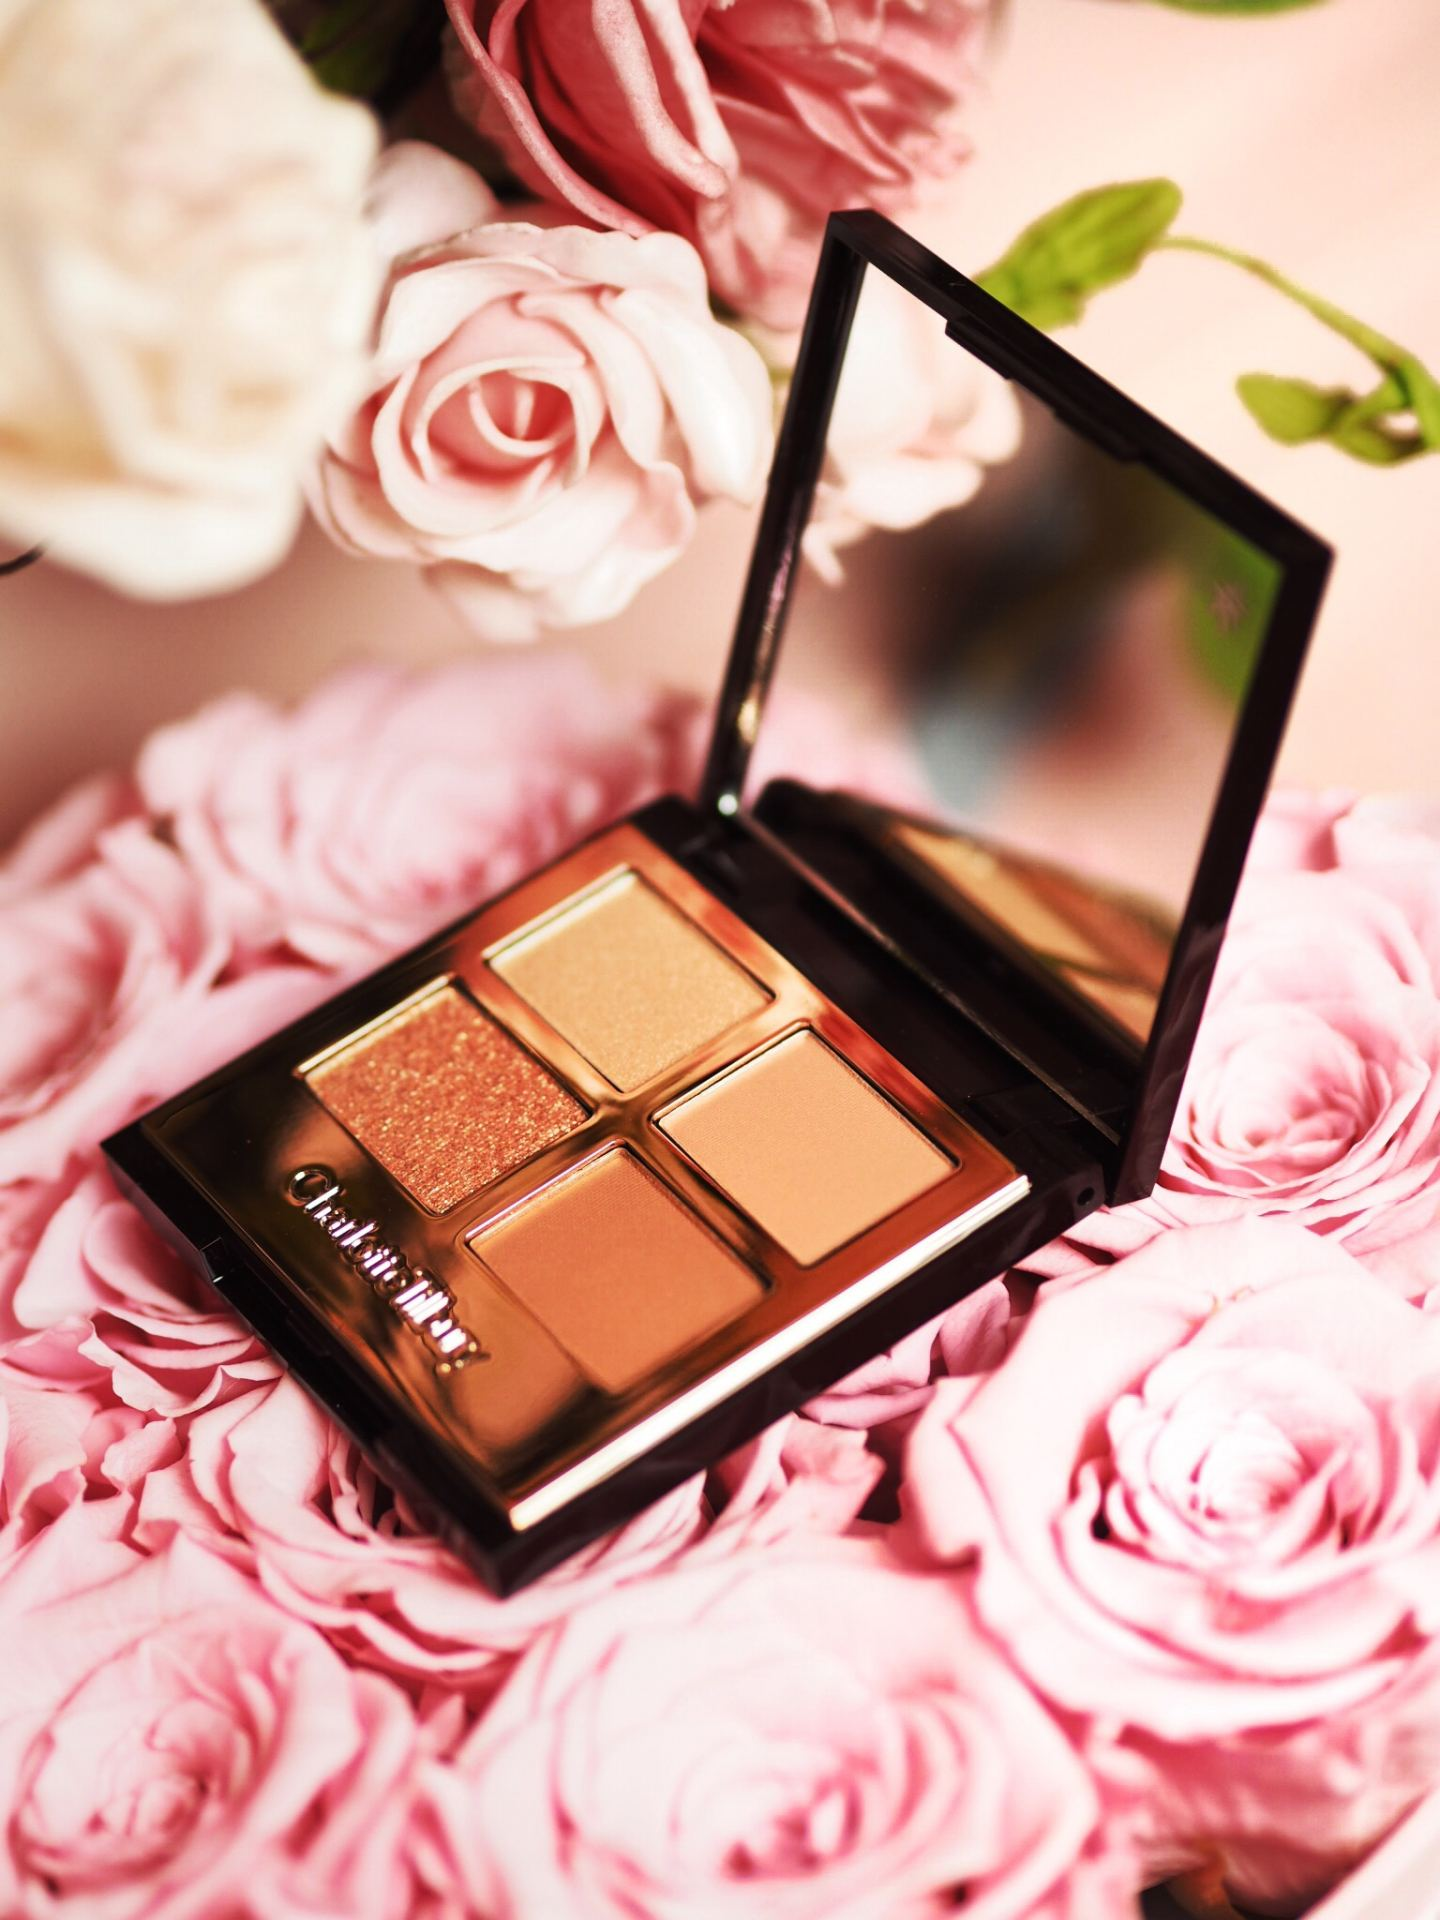 charlotte tilbury pillow talk blusher and eyeshadow palette to join the lipstick uk 2018